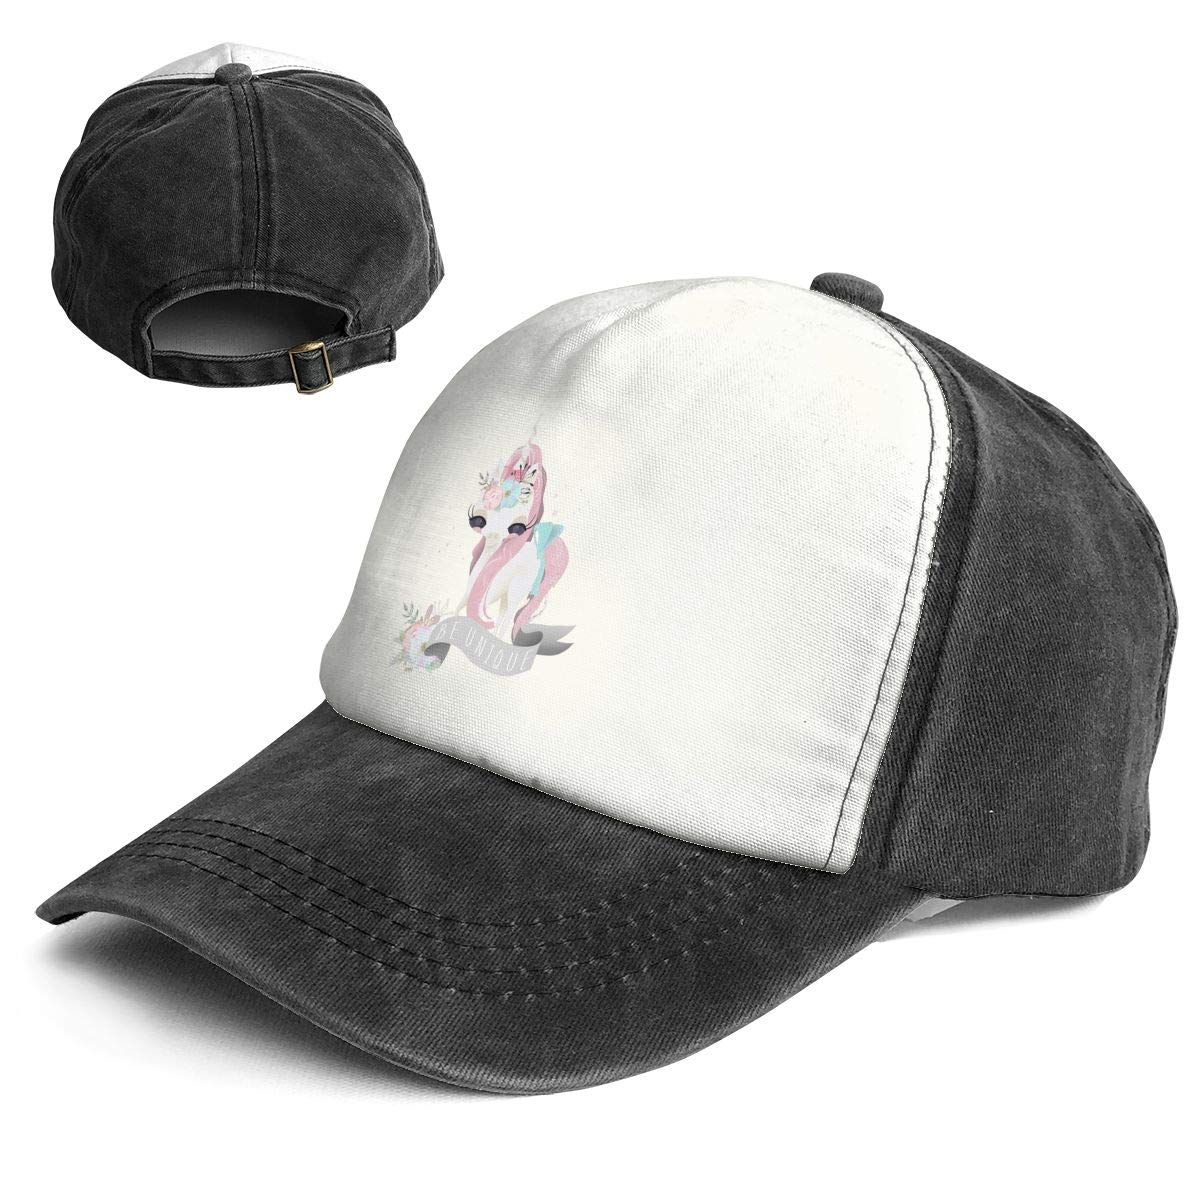 Fashion Vintage Hat Cute Baby Unicorn Girl Adjustable Dad Hat Baseball Cowboy Cap